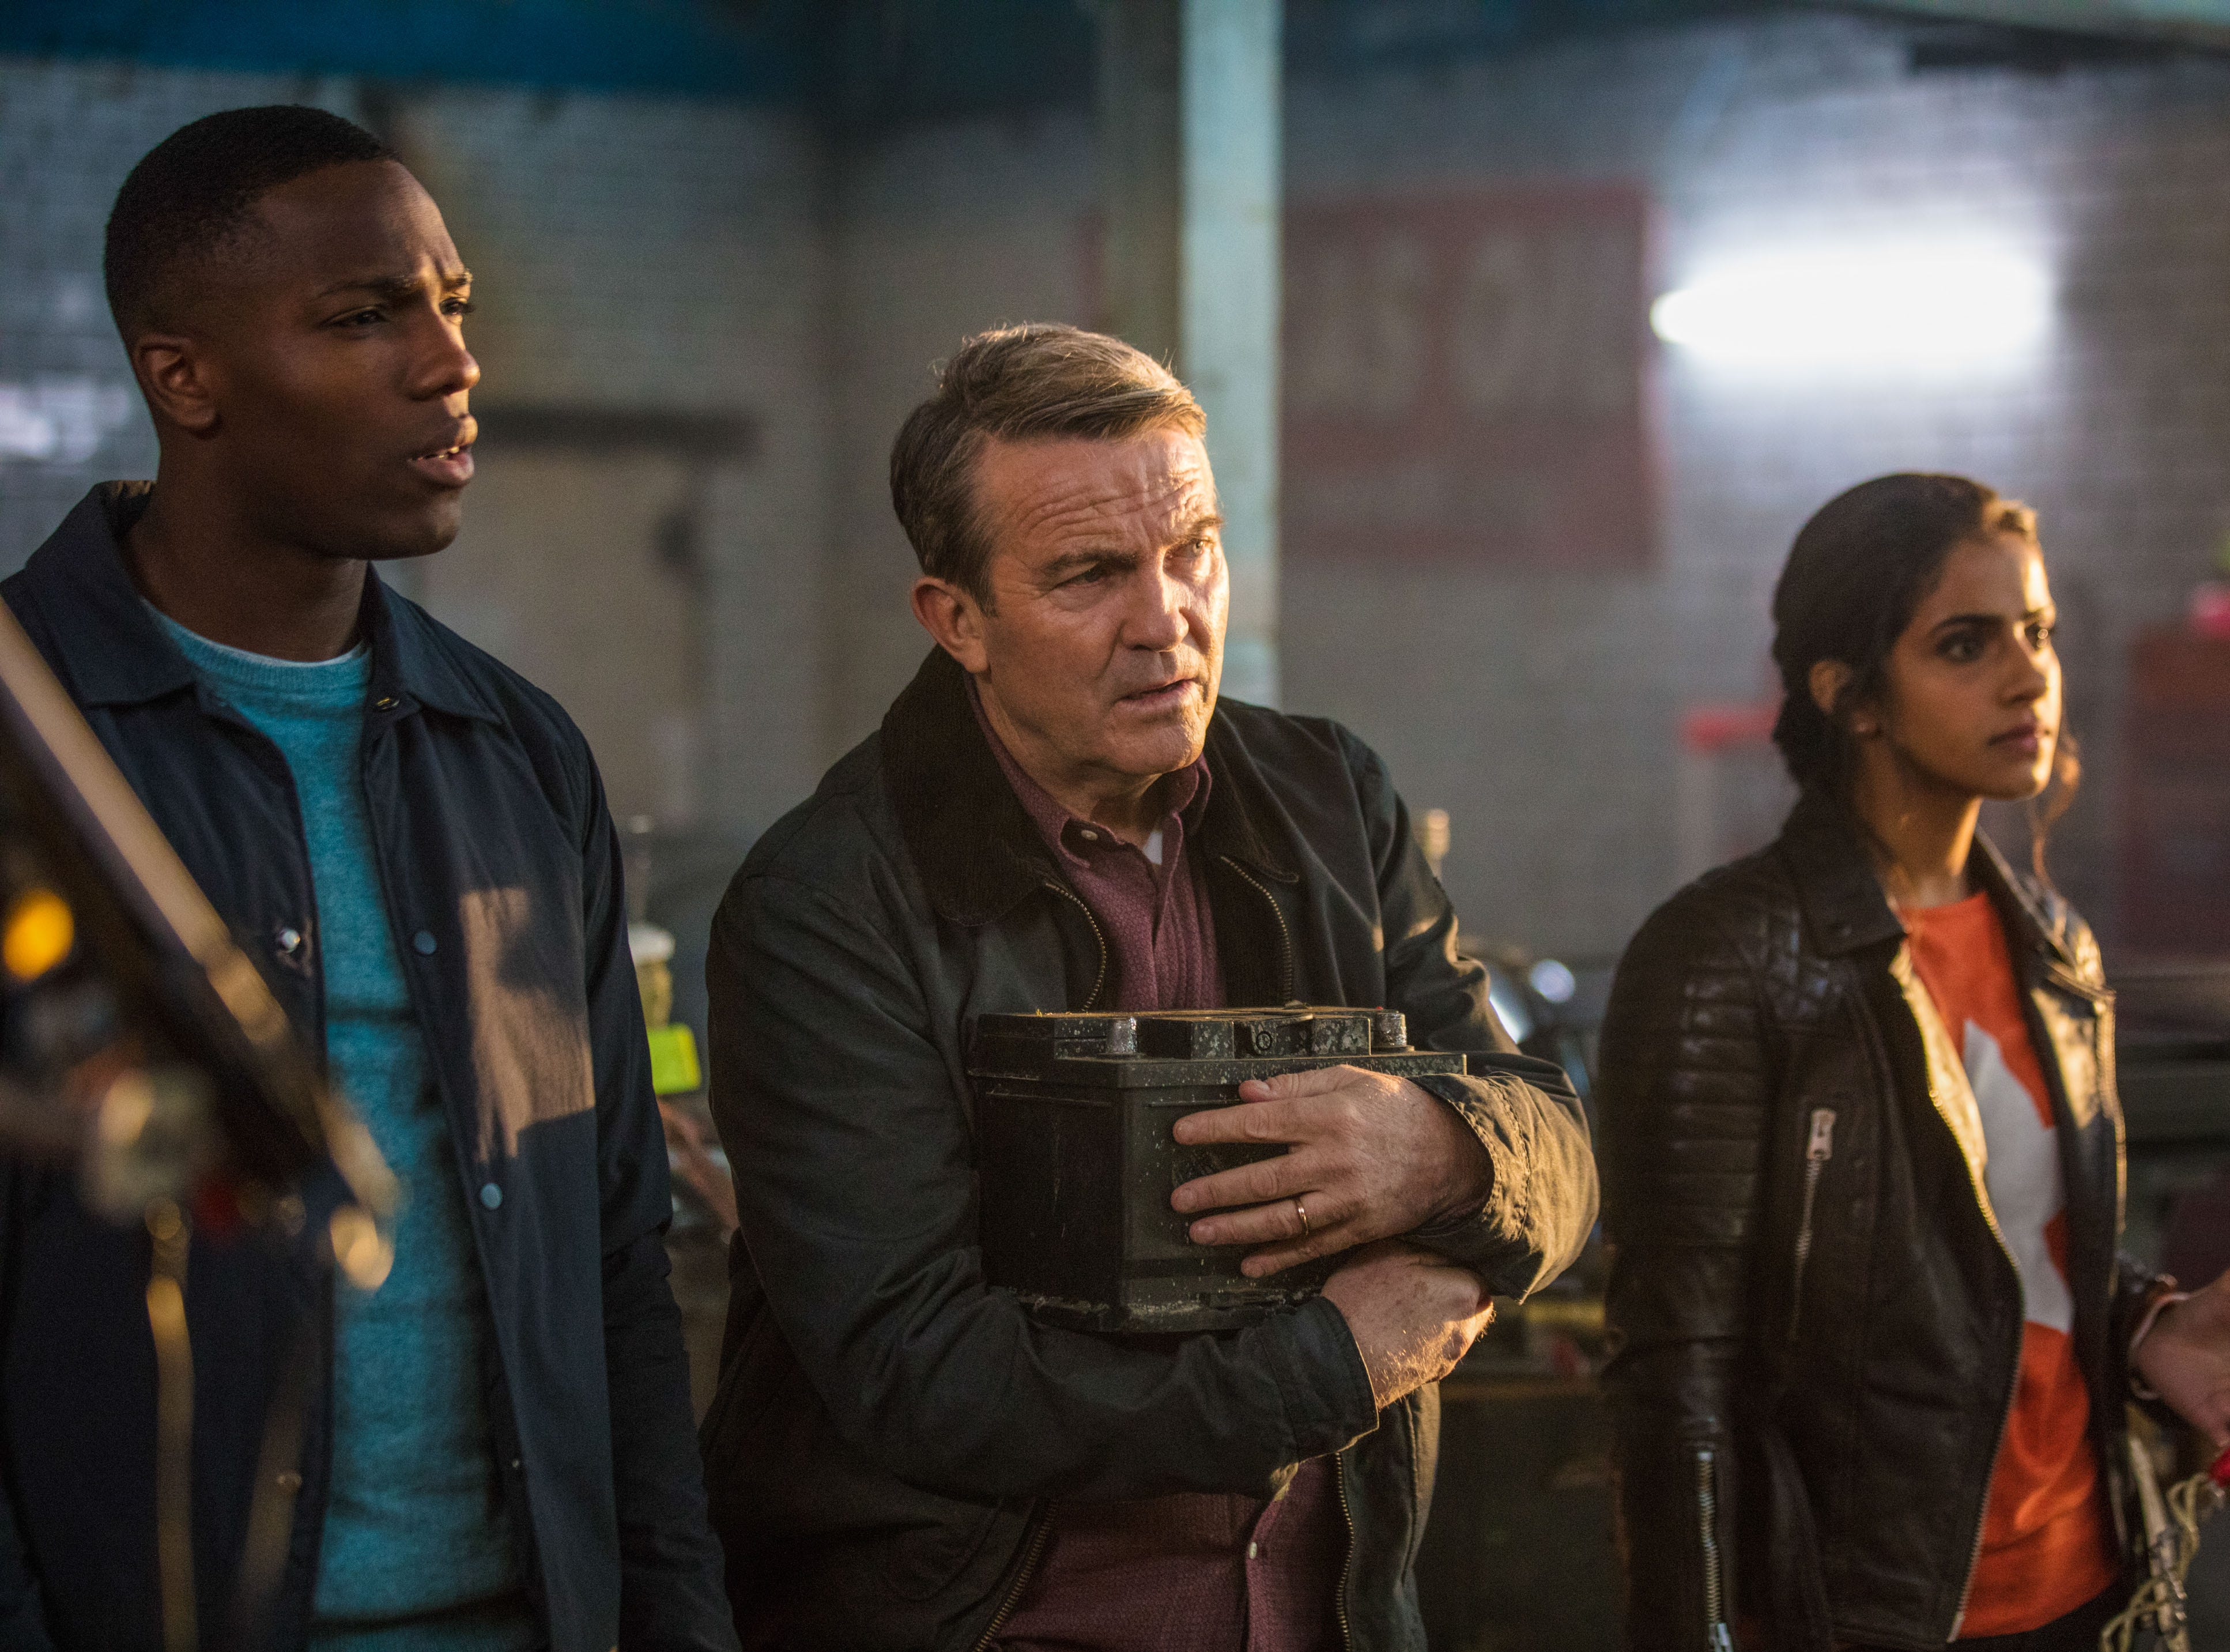 Tosin Cole, Bradley Walsh and Mandip Gill have been tapped to be the new companions for the Thirteenth Doctor. But it still remains to be seen how their characters, Ryan, Graham and Yasmin, become the Doctor's new friends.